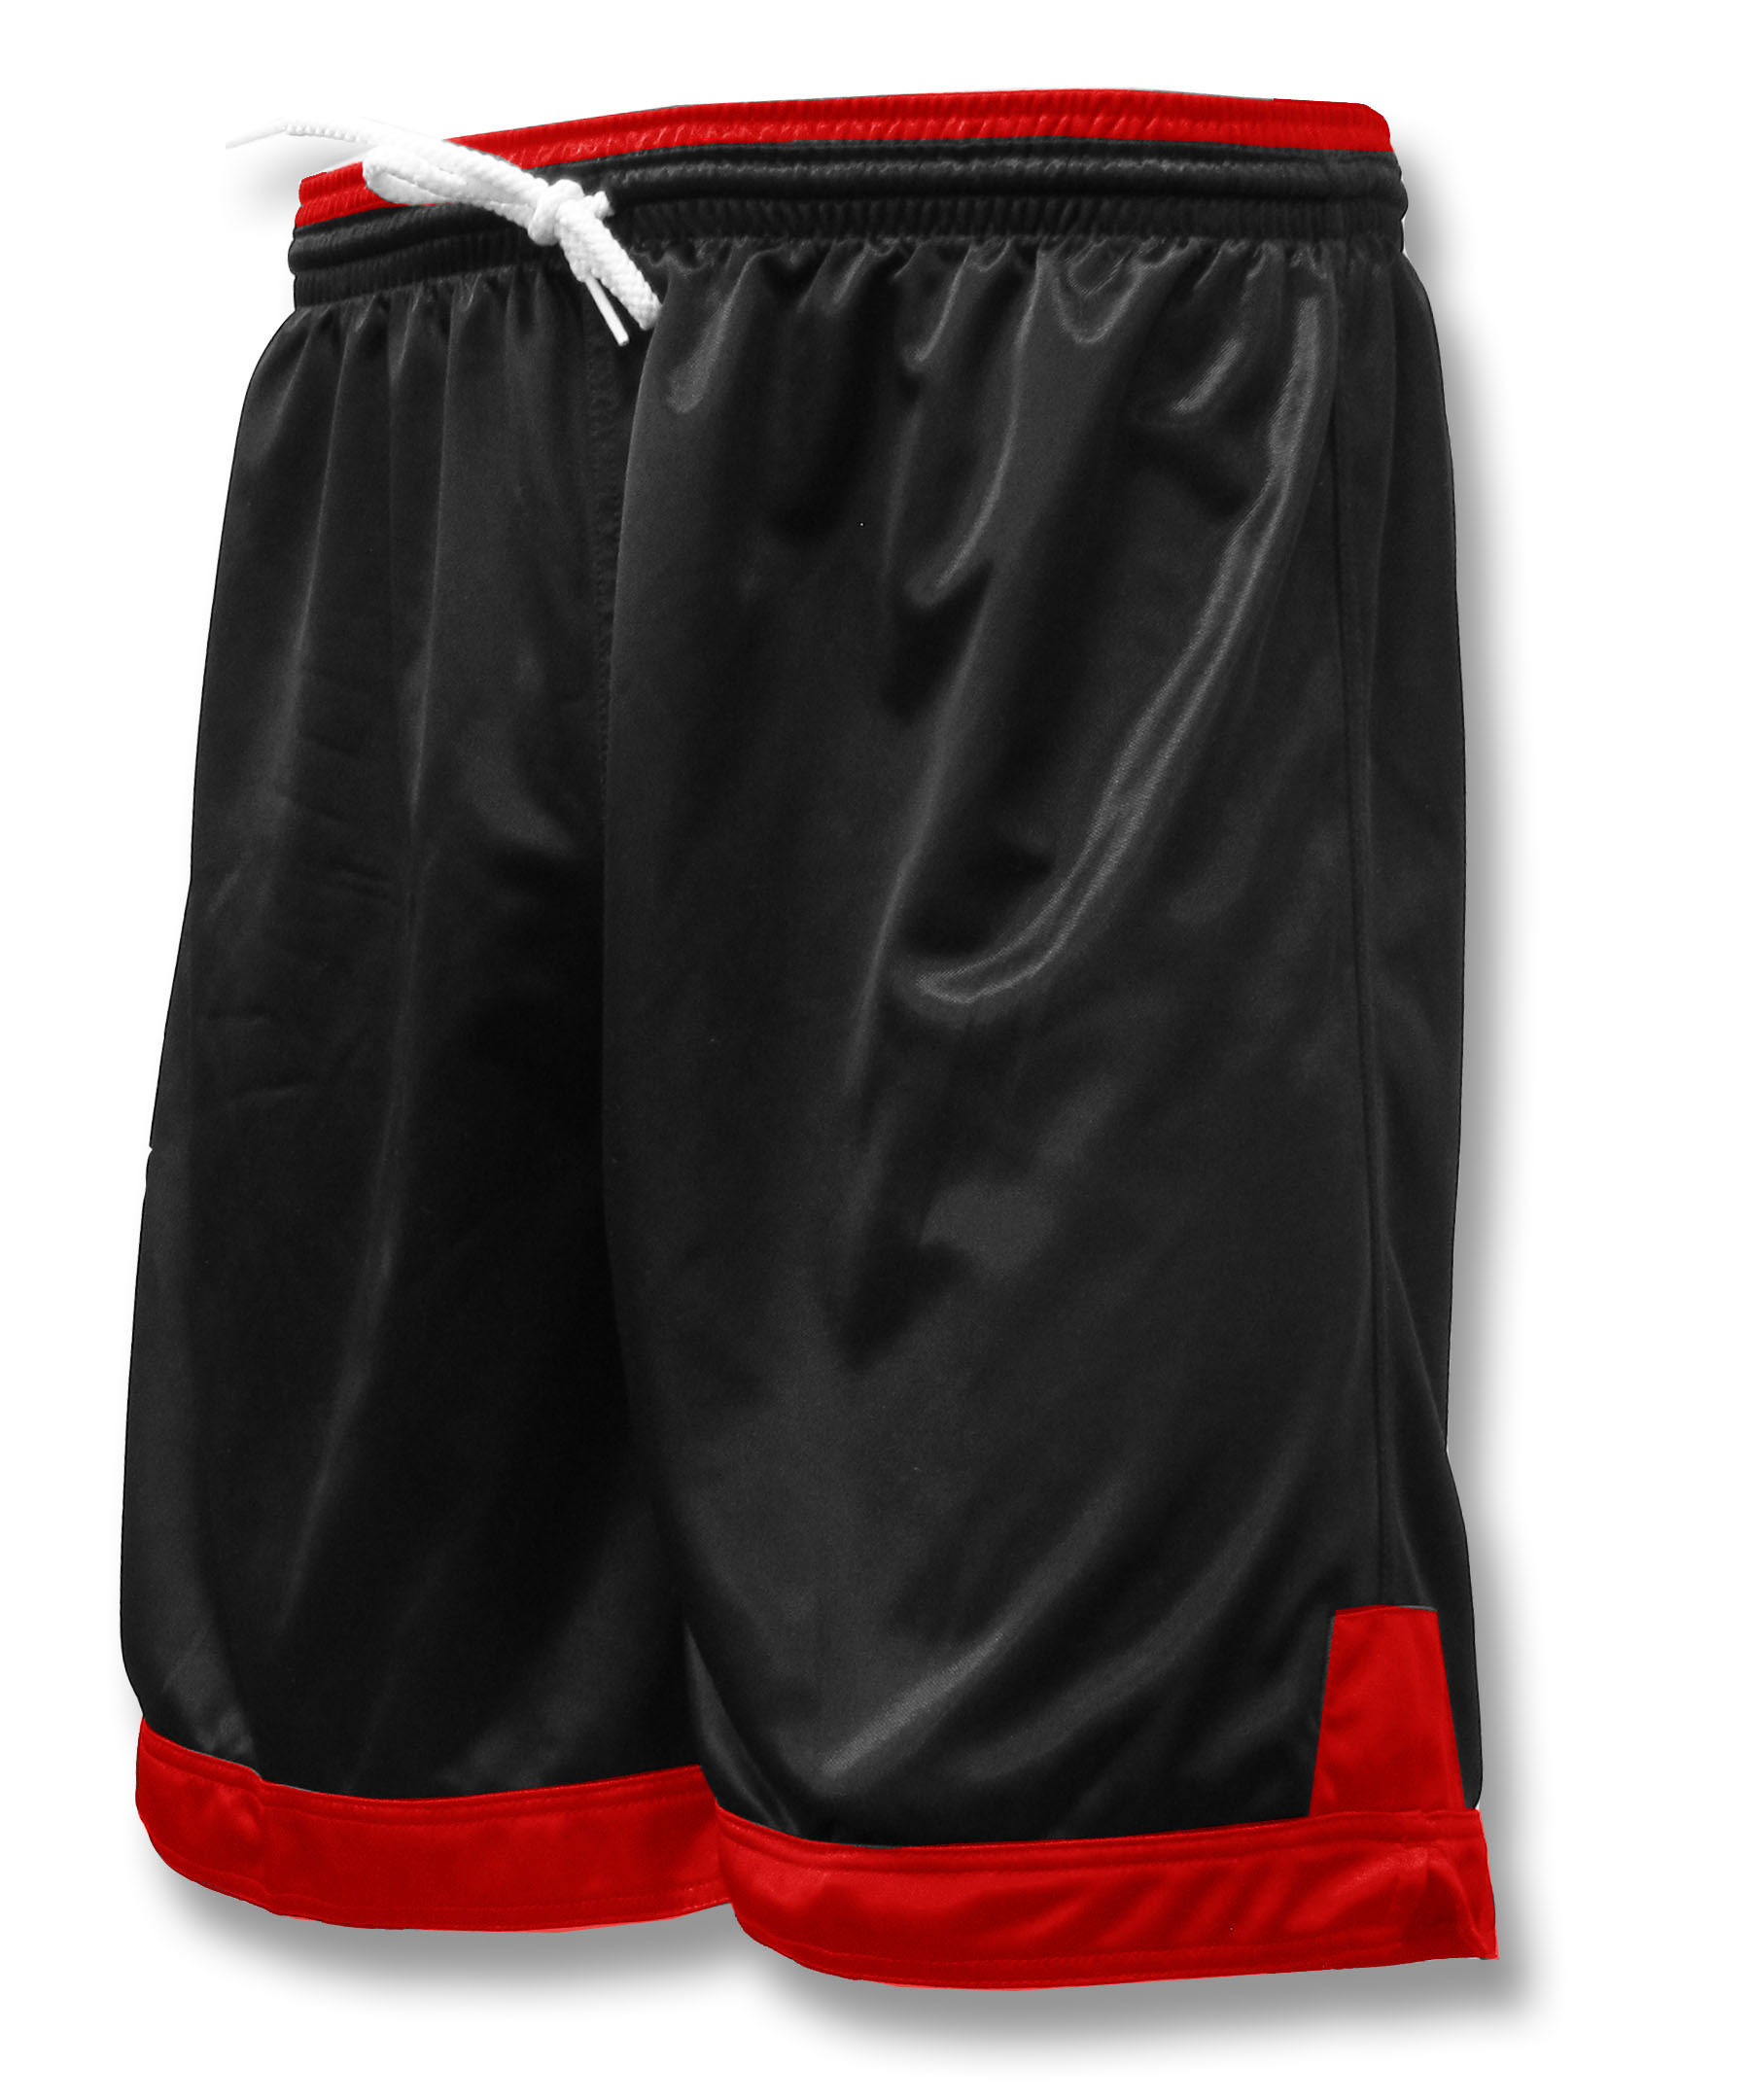 bcf742c1d83dd Soccer Shorts, Socks | Forza Soccer Uniforms and Gear